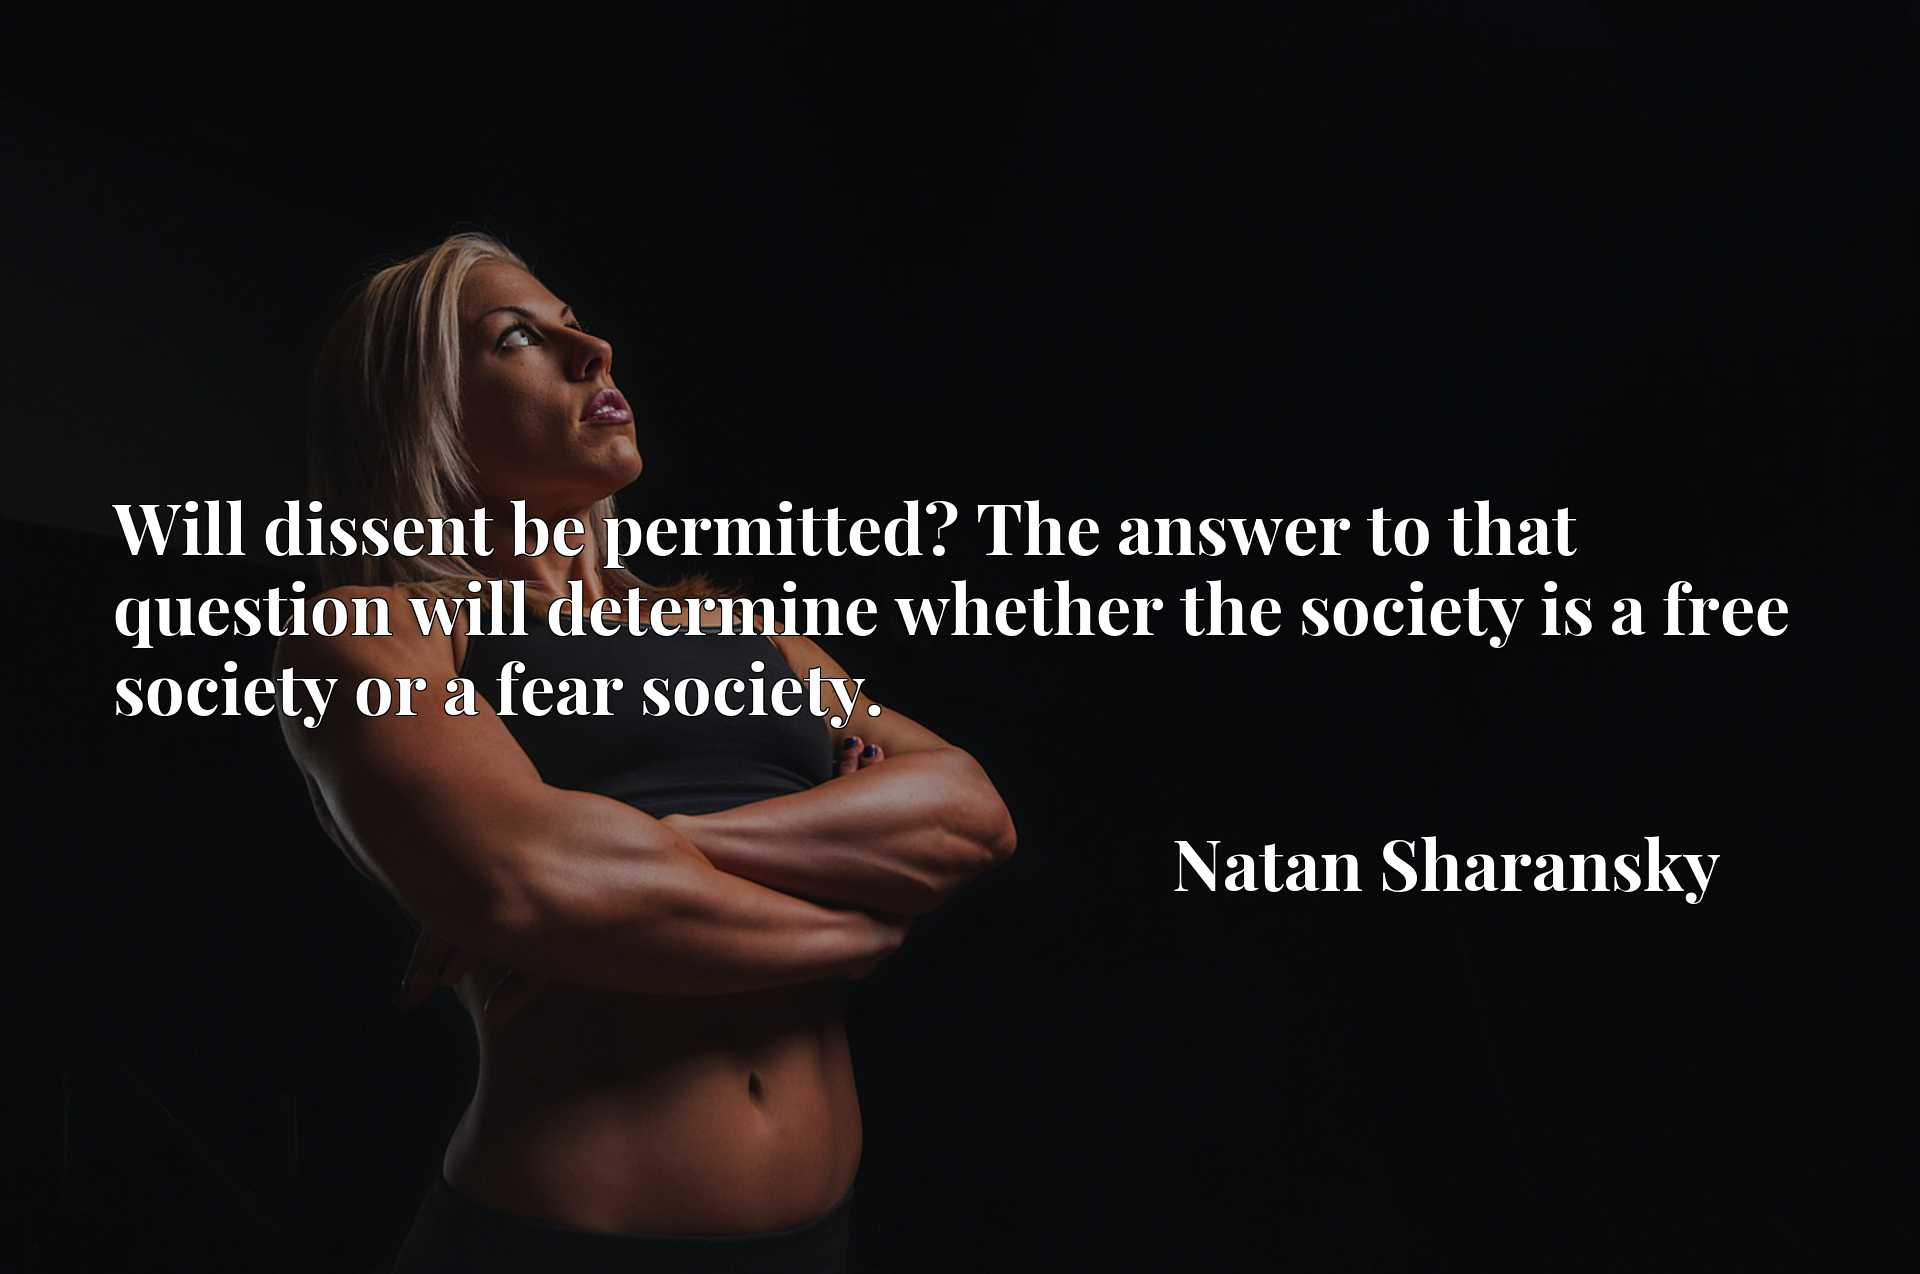 Will dissent be permitted? The answer to that question will determine whether the society is a free society or a fear society.